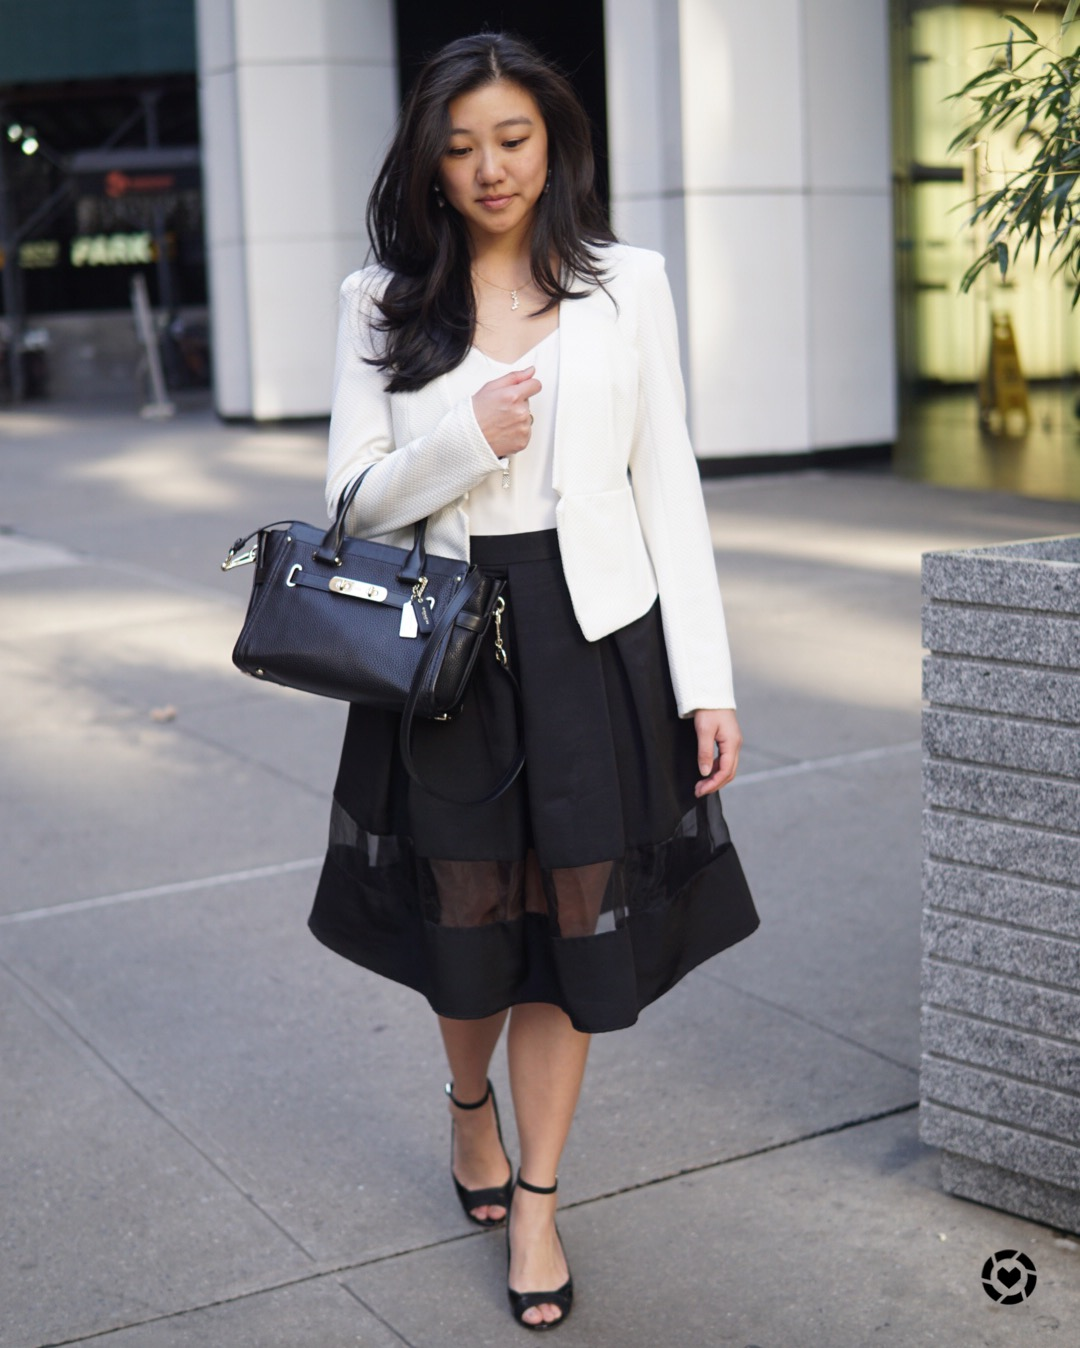 Bag:  Coach  | Blazer:  Express  | Skirt: sold out but I've linked similar ones  here  and  here